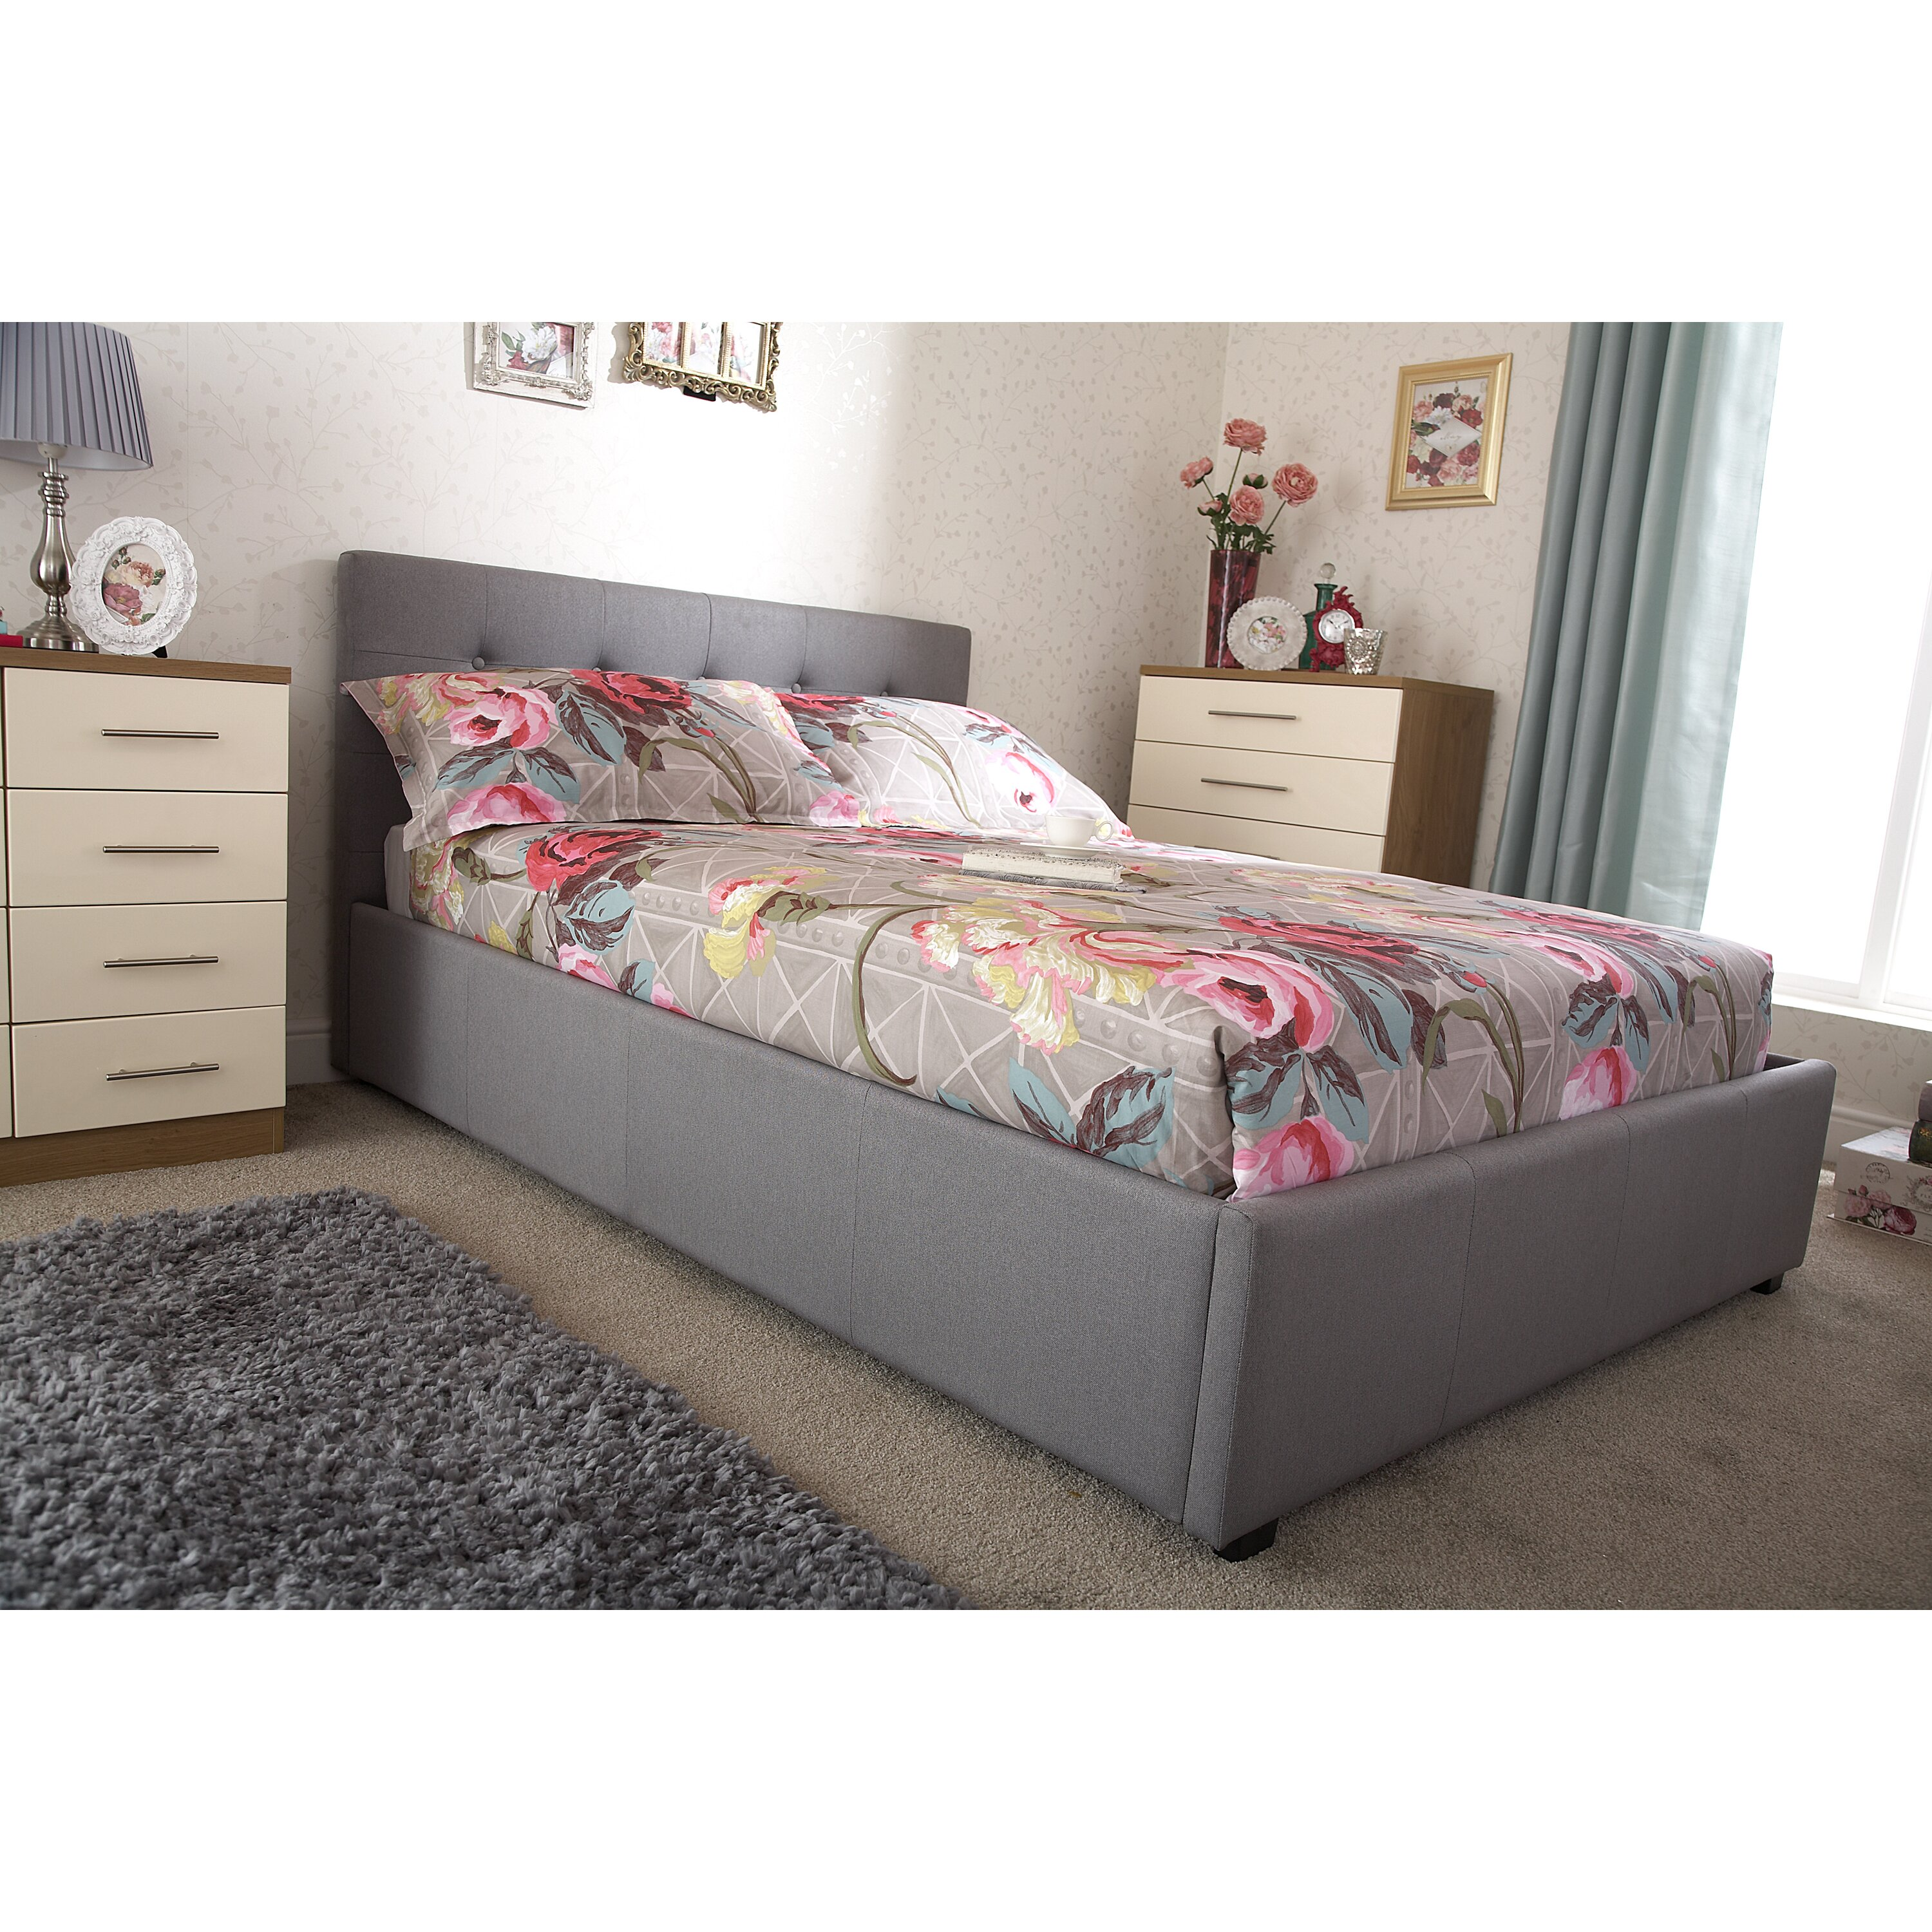 Ottoman For Bedroom Mercury Row Adhafera Upholstered Ottoman Bed Frame Reviews